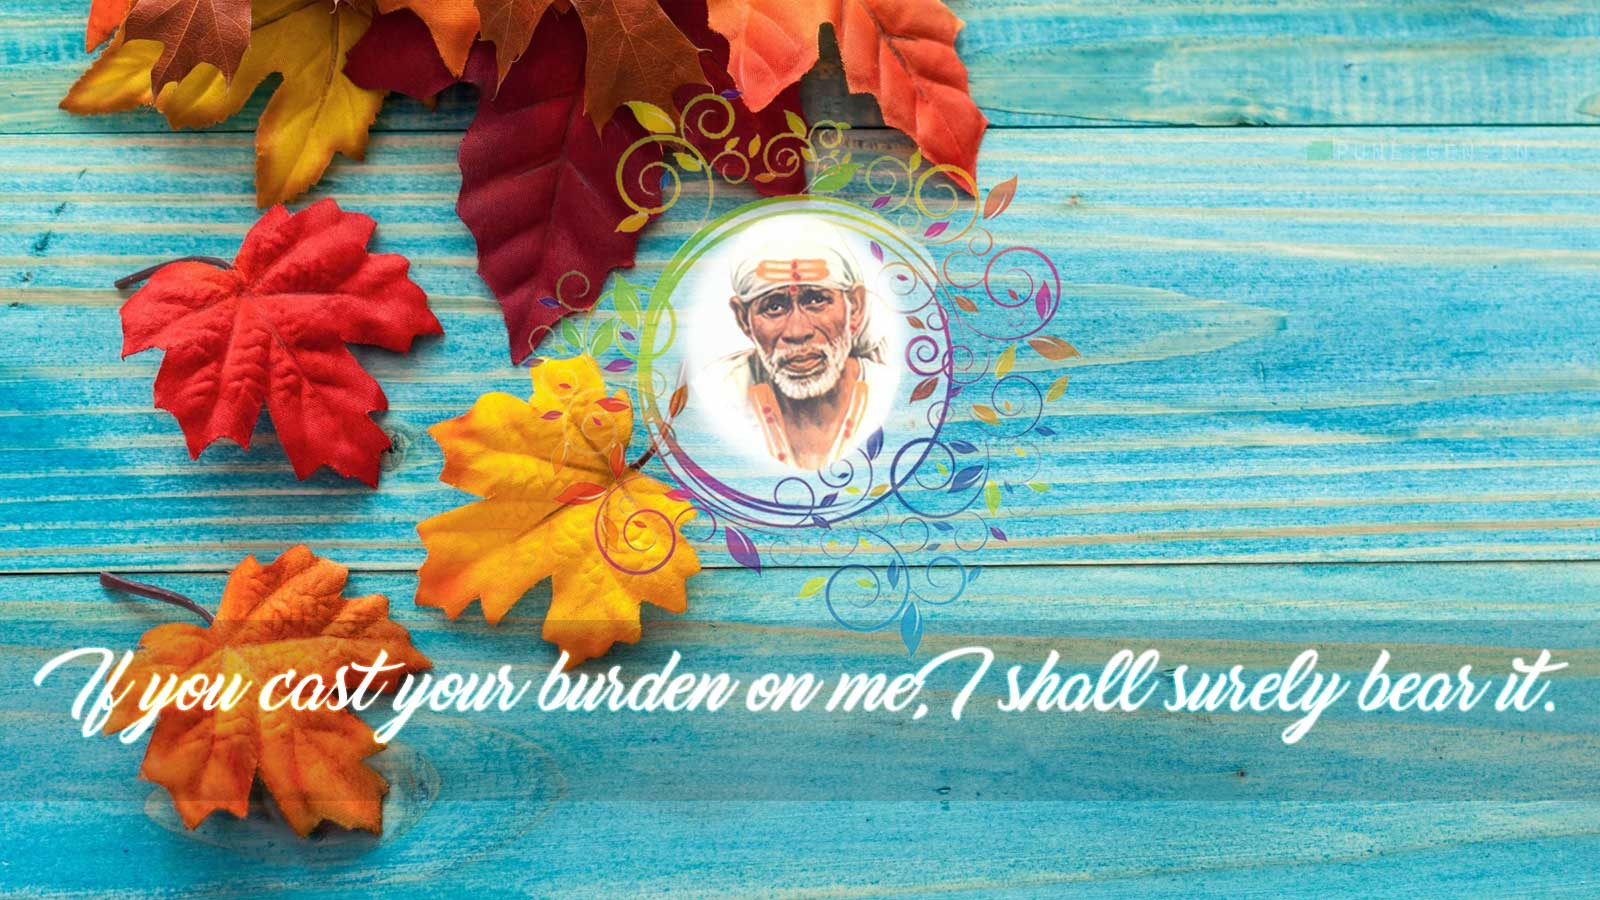 Sai Baba Teaching's : If you cast your burden…